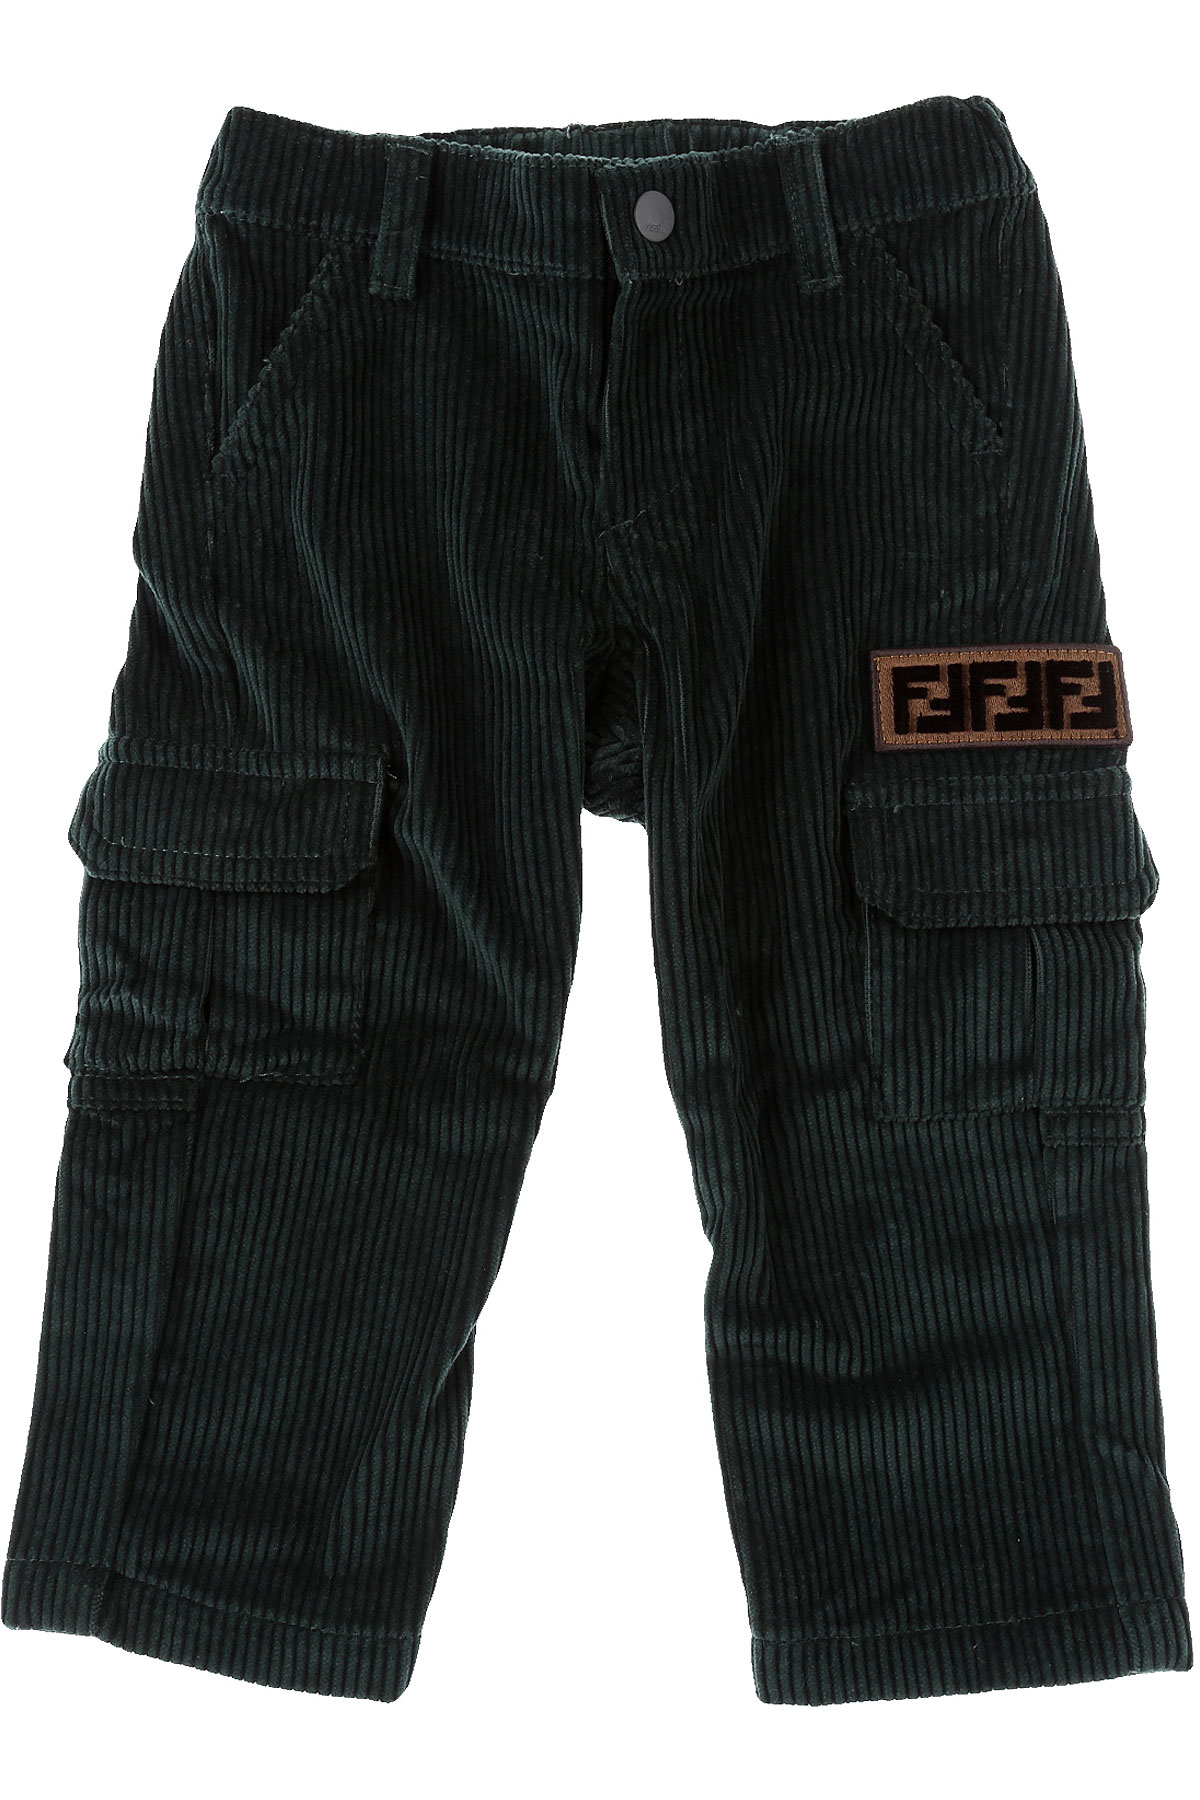 Fendi Baby Pants for Boys On Sale, Forest Green, Cotton, 2019, 18 M 9 M